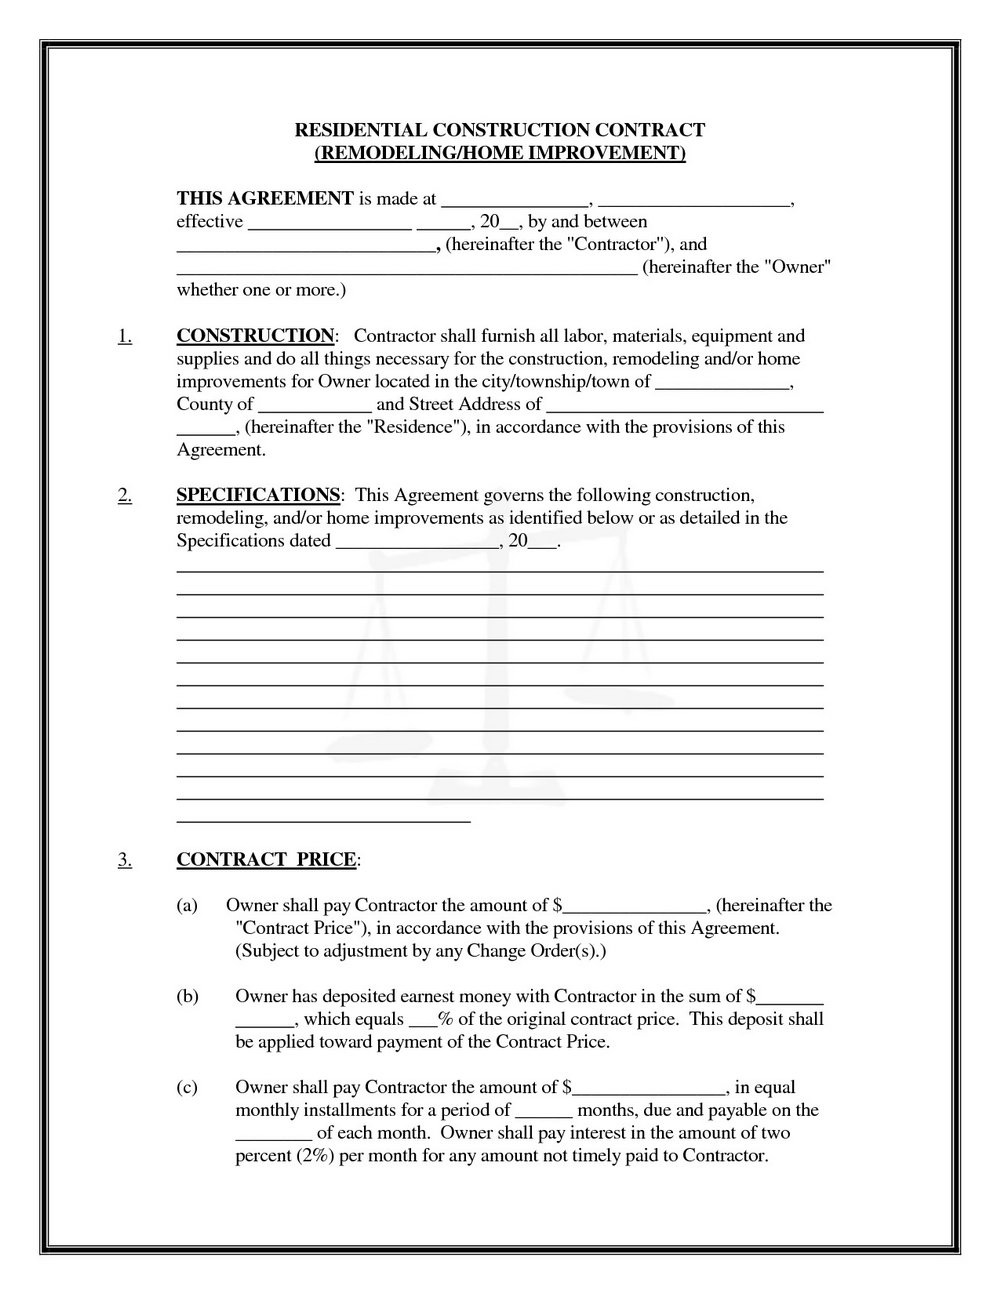 Residential Construction Contract Template Free